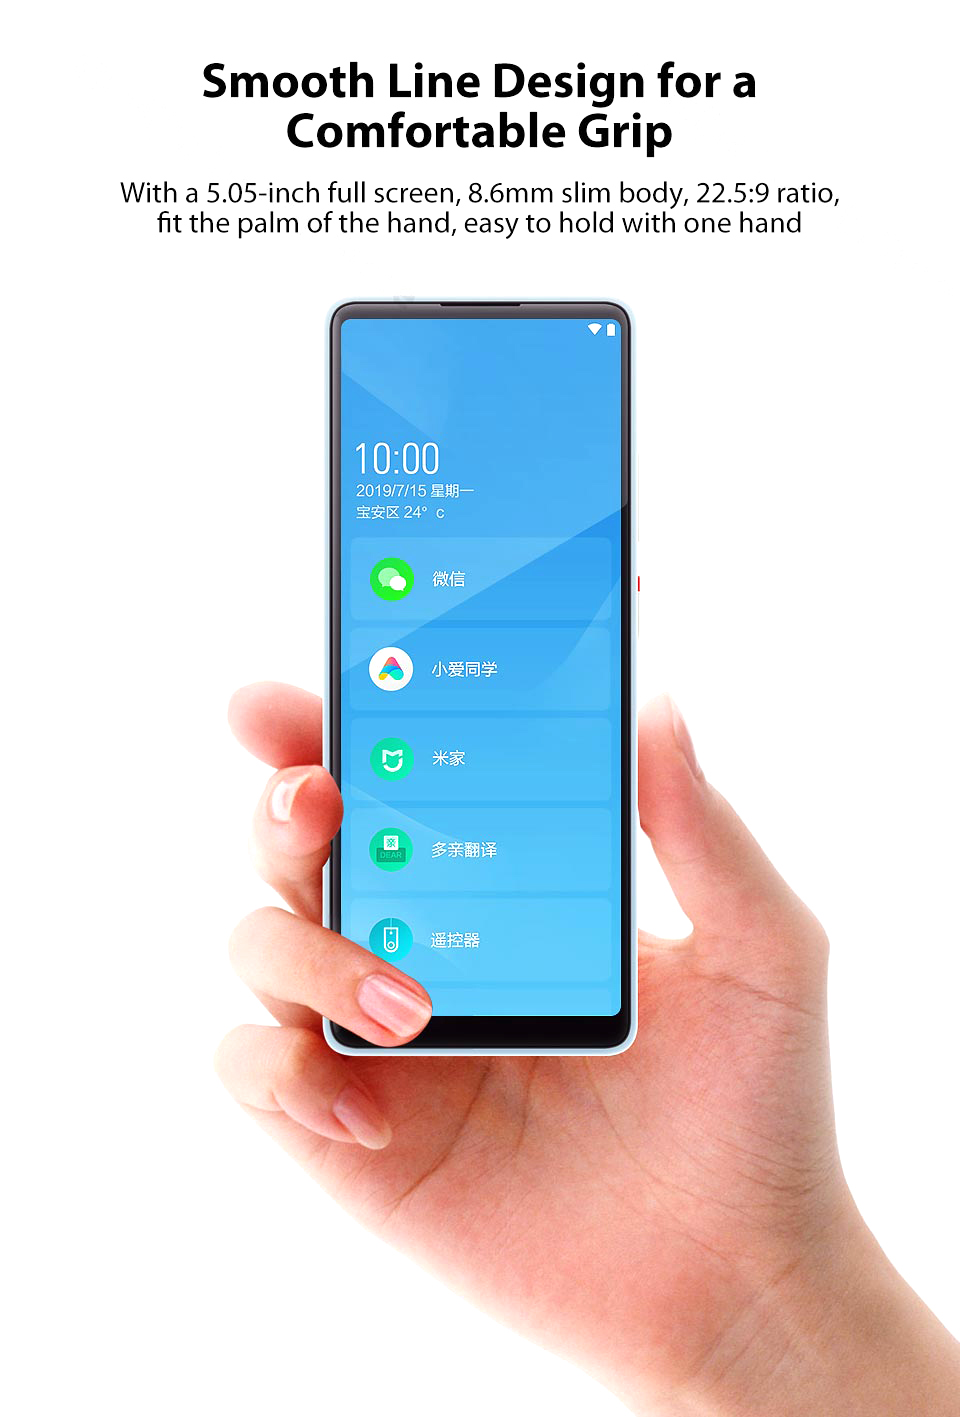 QIN Full Screen Phone 4G Network With Wifi 5.05 inch 2100mAh Andriod 9.0 SC9832E Quad Core Feature Phone from Xiaomi youpin